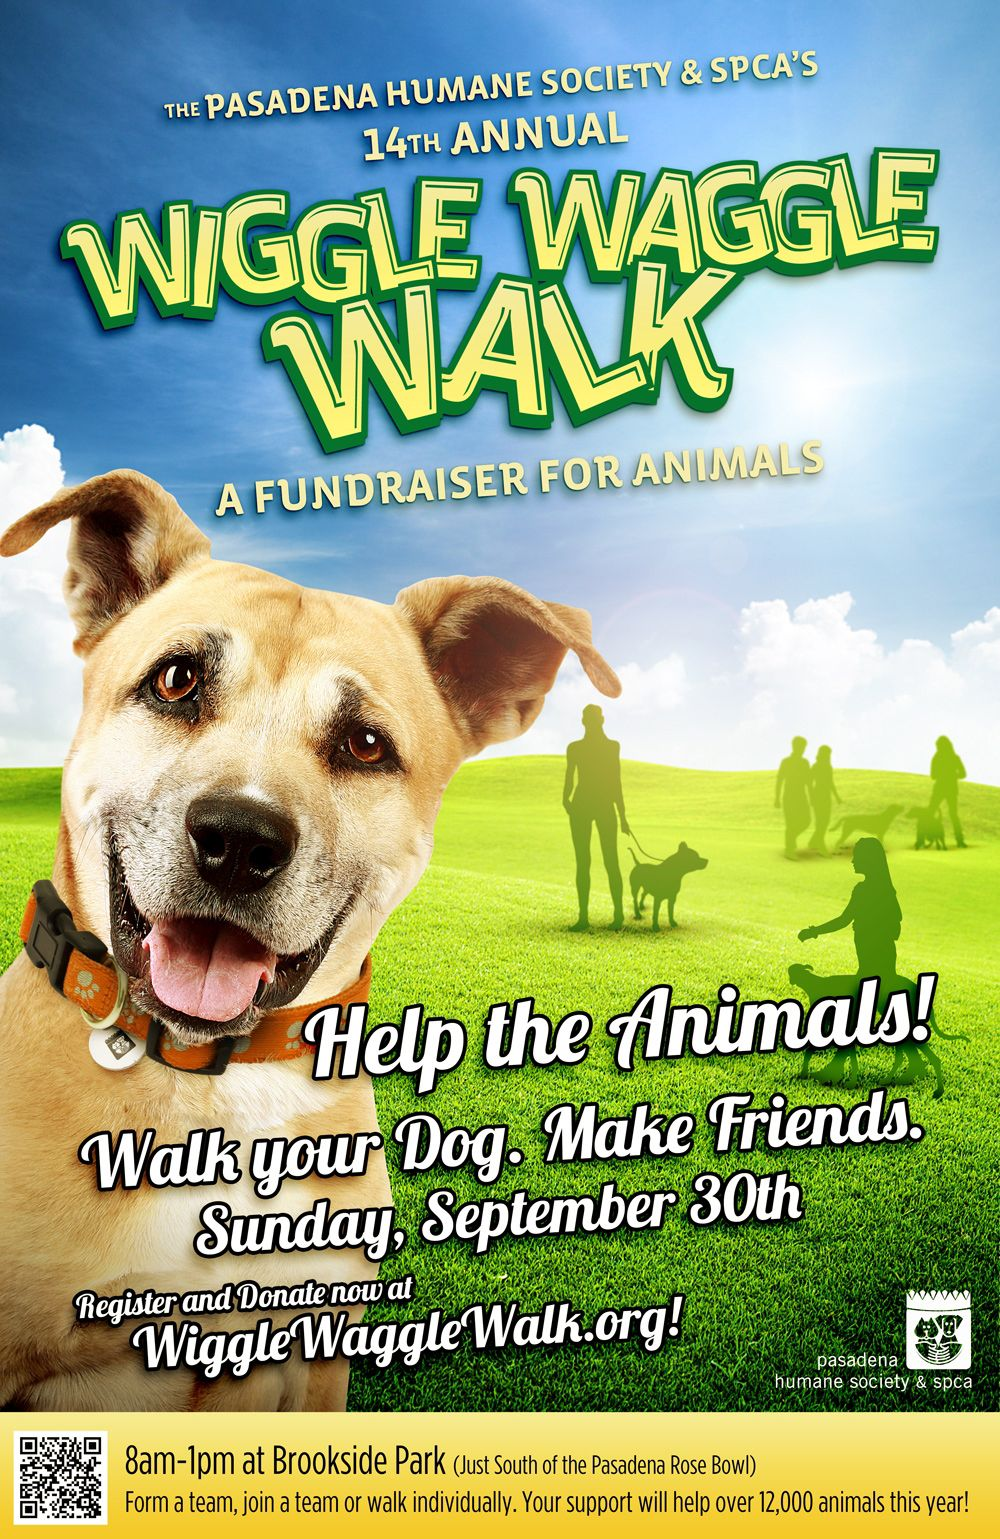 The 14th Annual Wiggle Waggle Walk A Fundraiser for